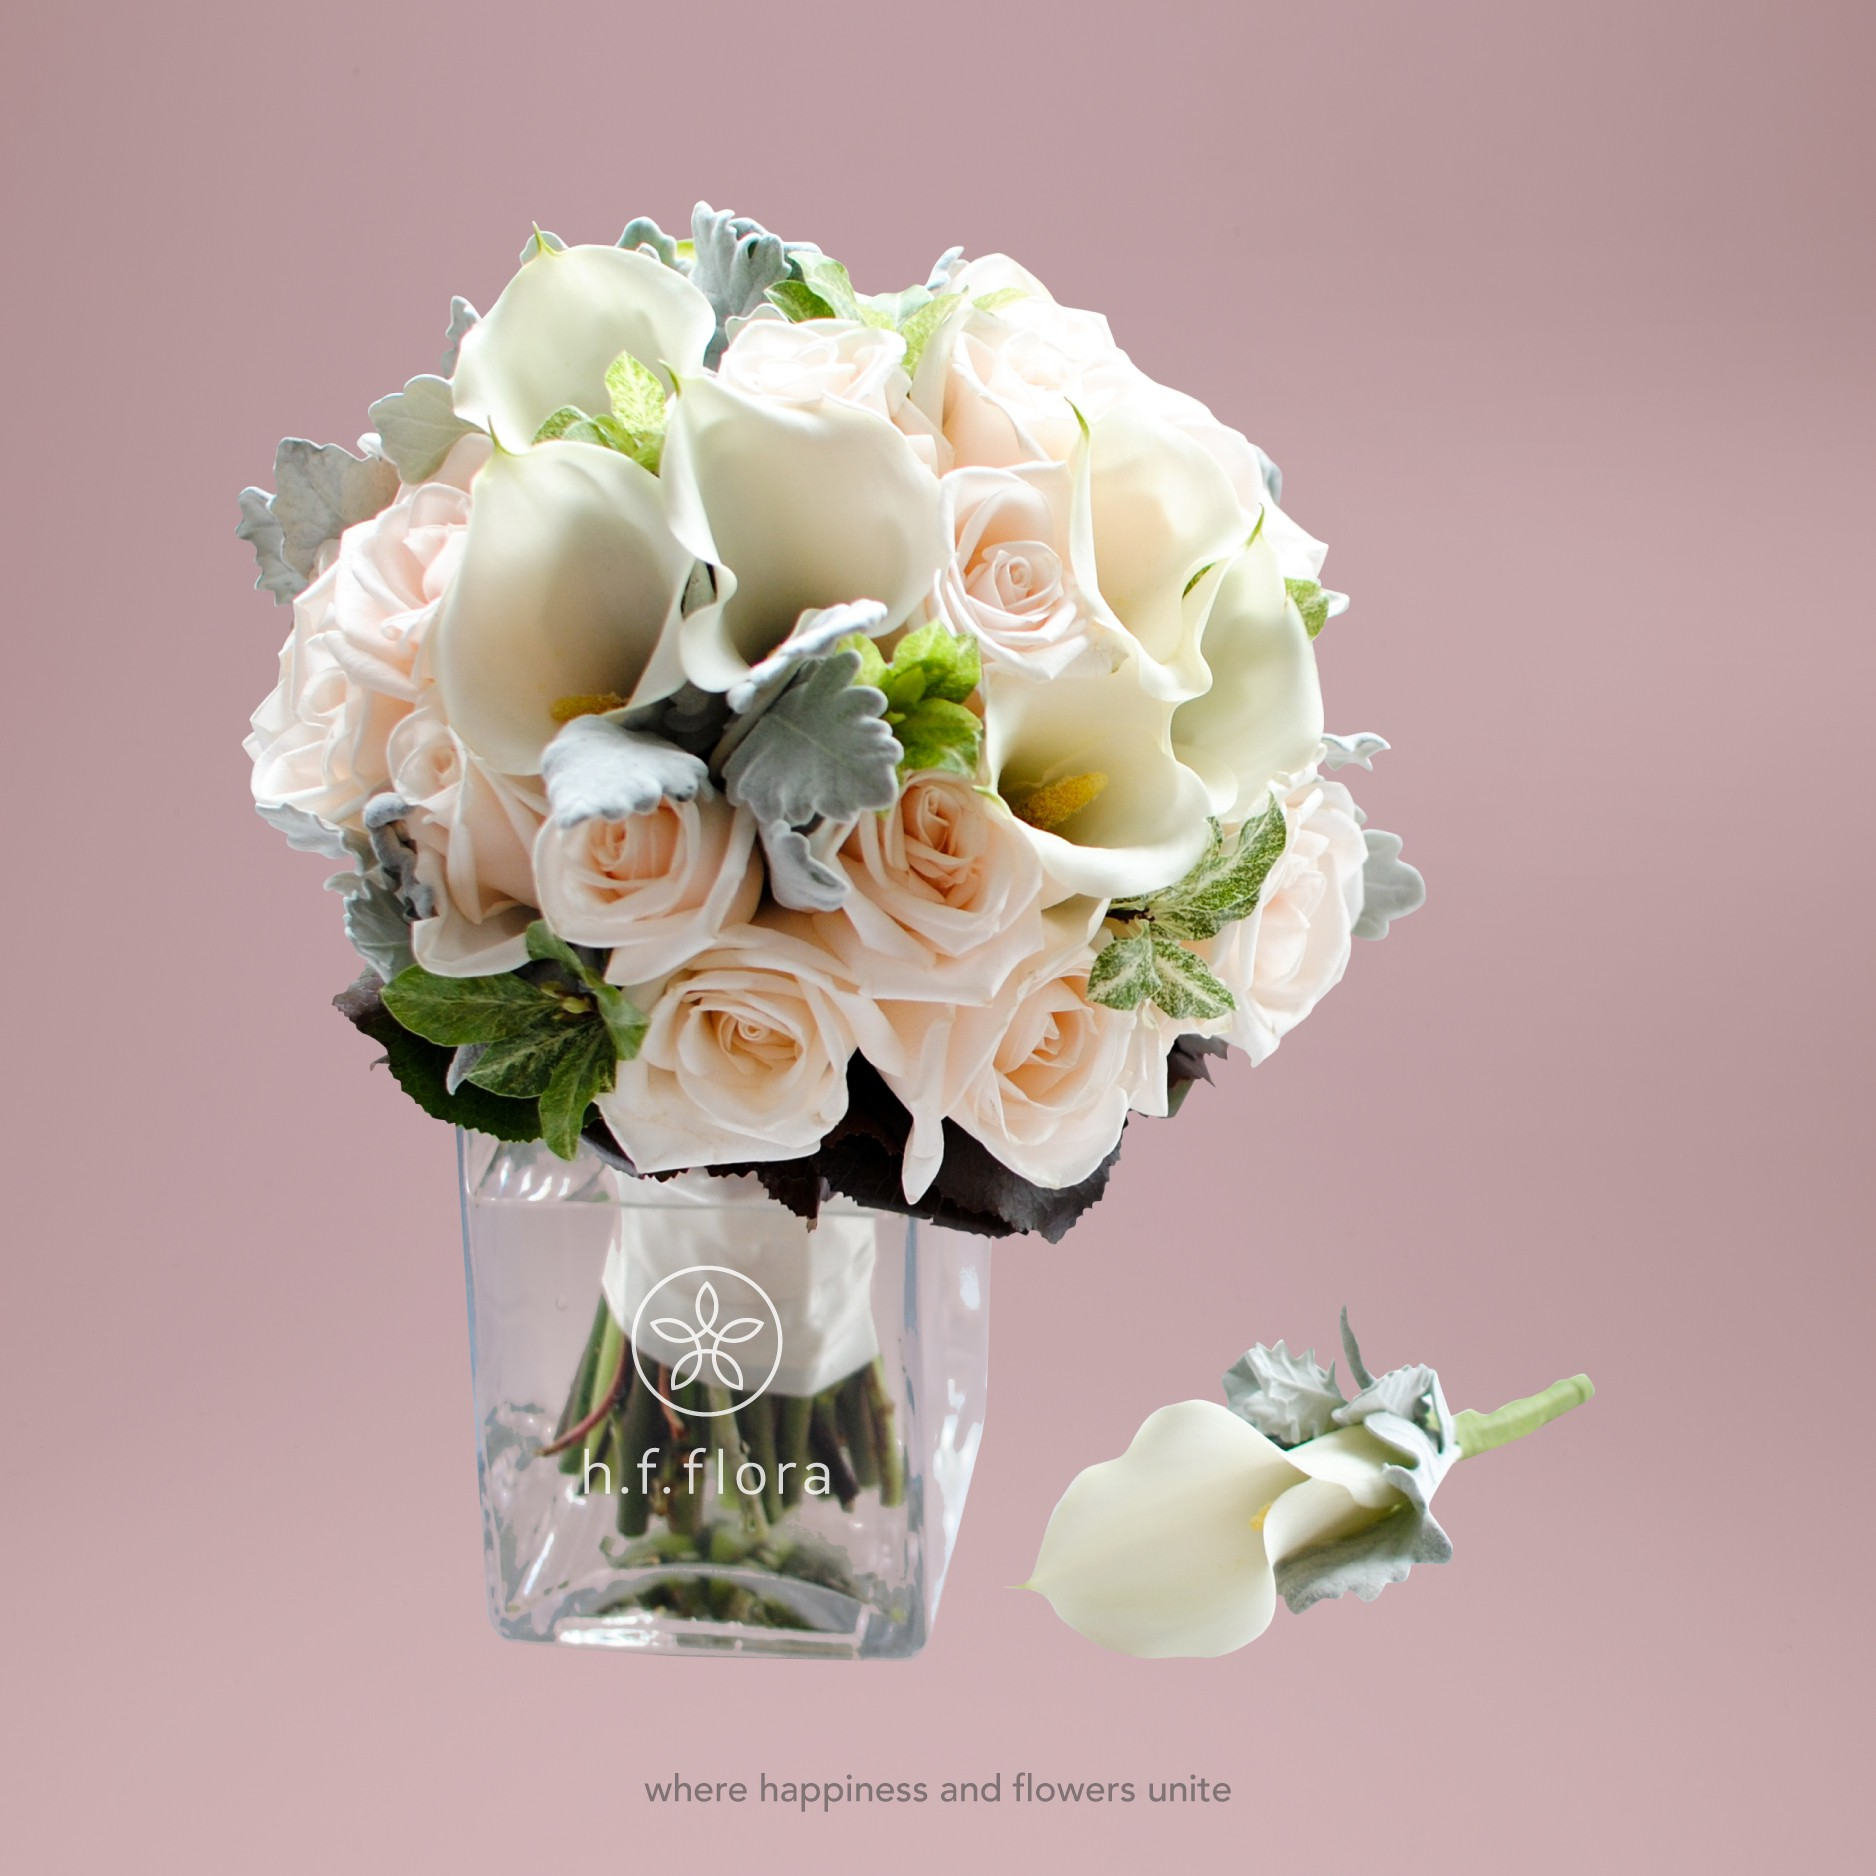 Rose and calla lily bridal bouquet weddings rose and calla lily izmirmasajfo